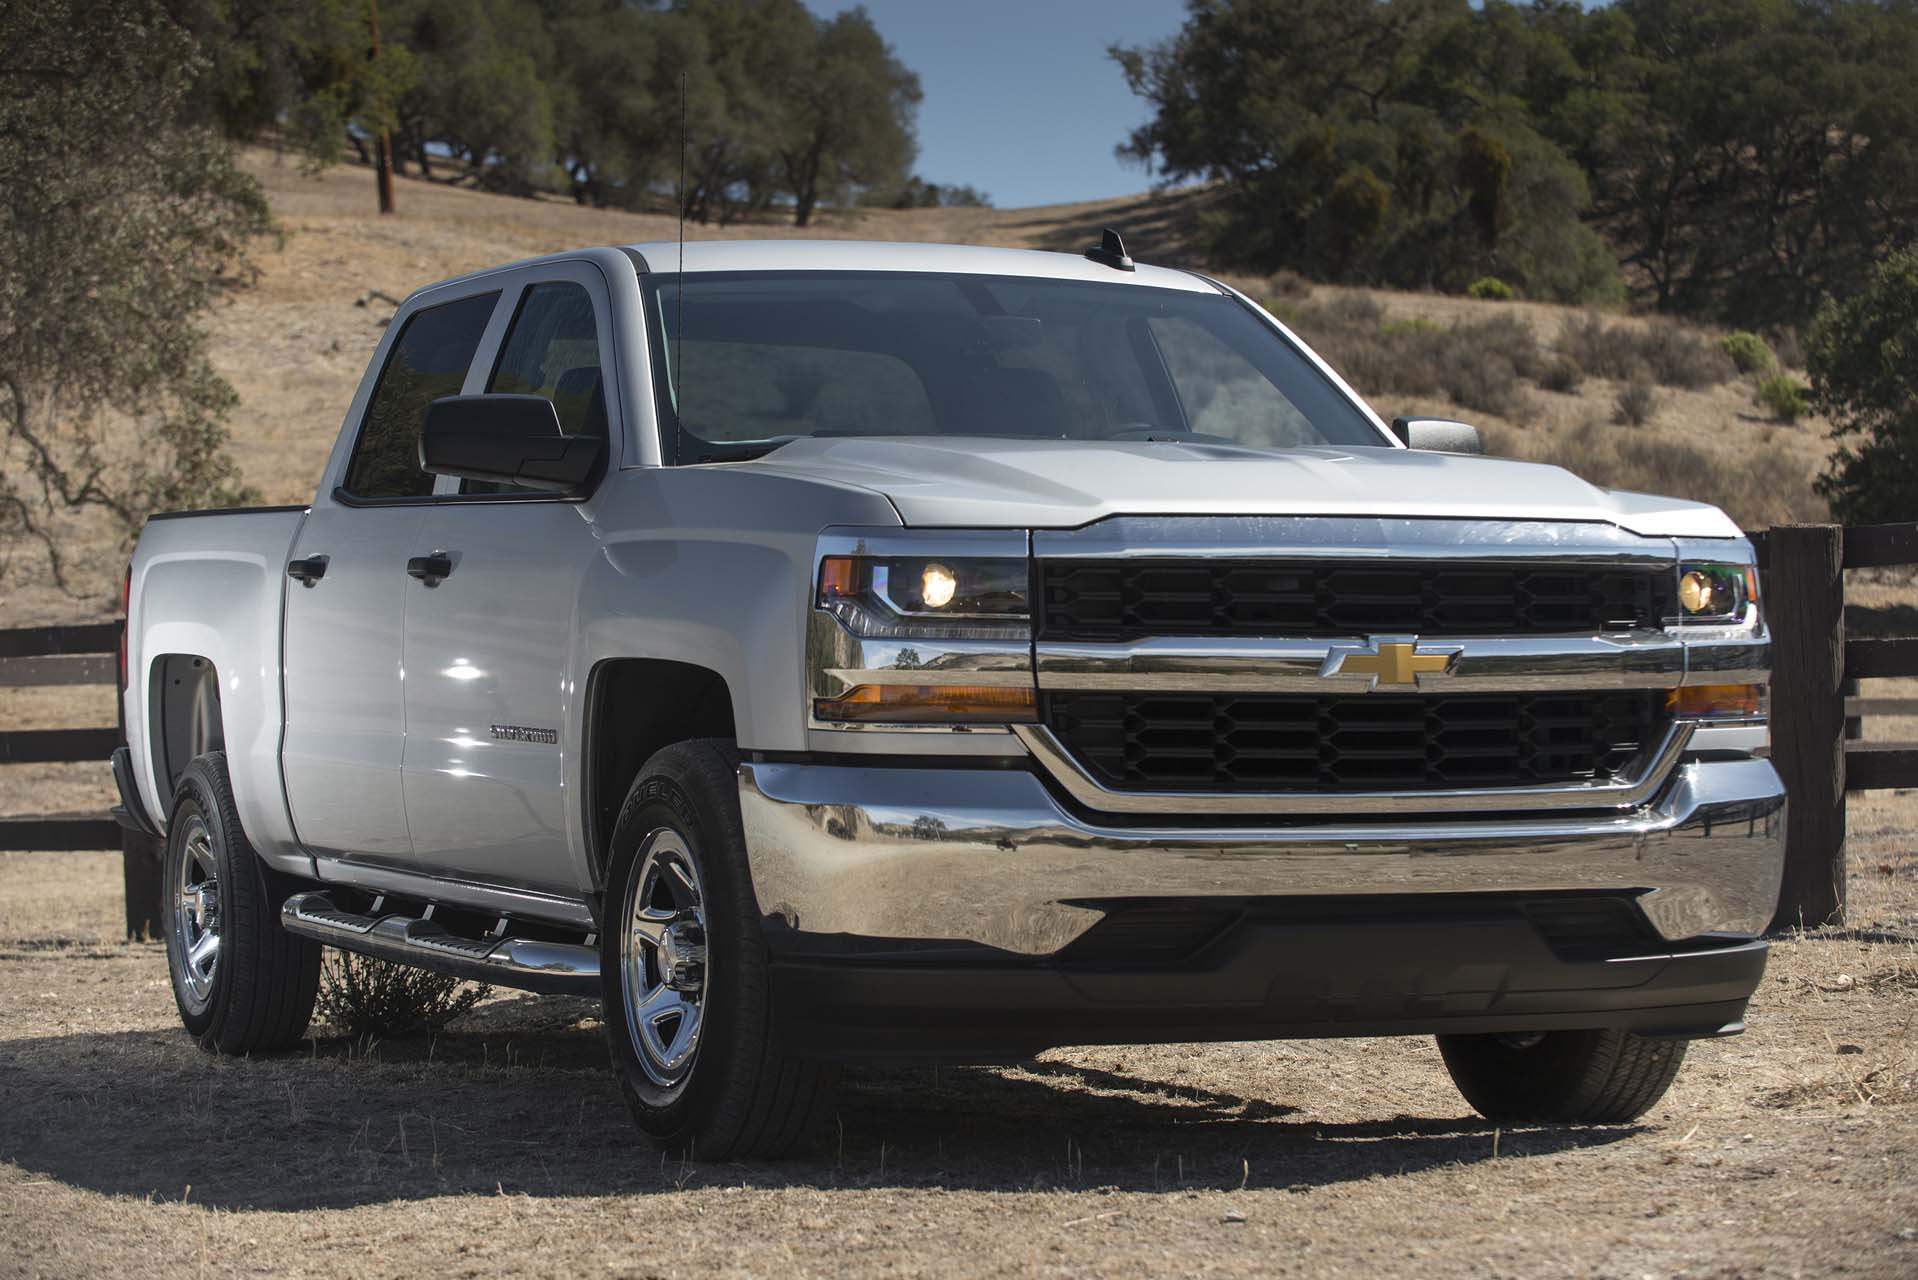 modern makeover news gets another recreation chevrolet chevy big conversion cheyenne pickup day silverado